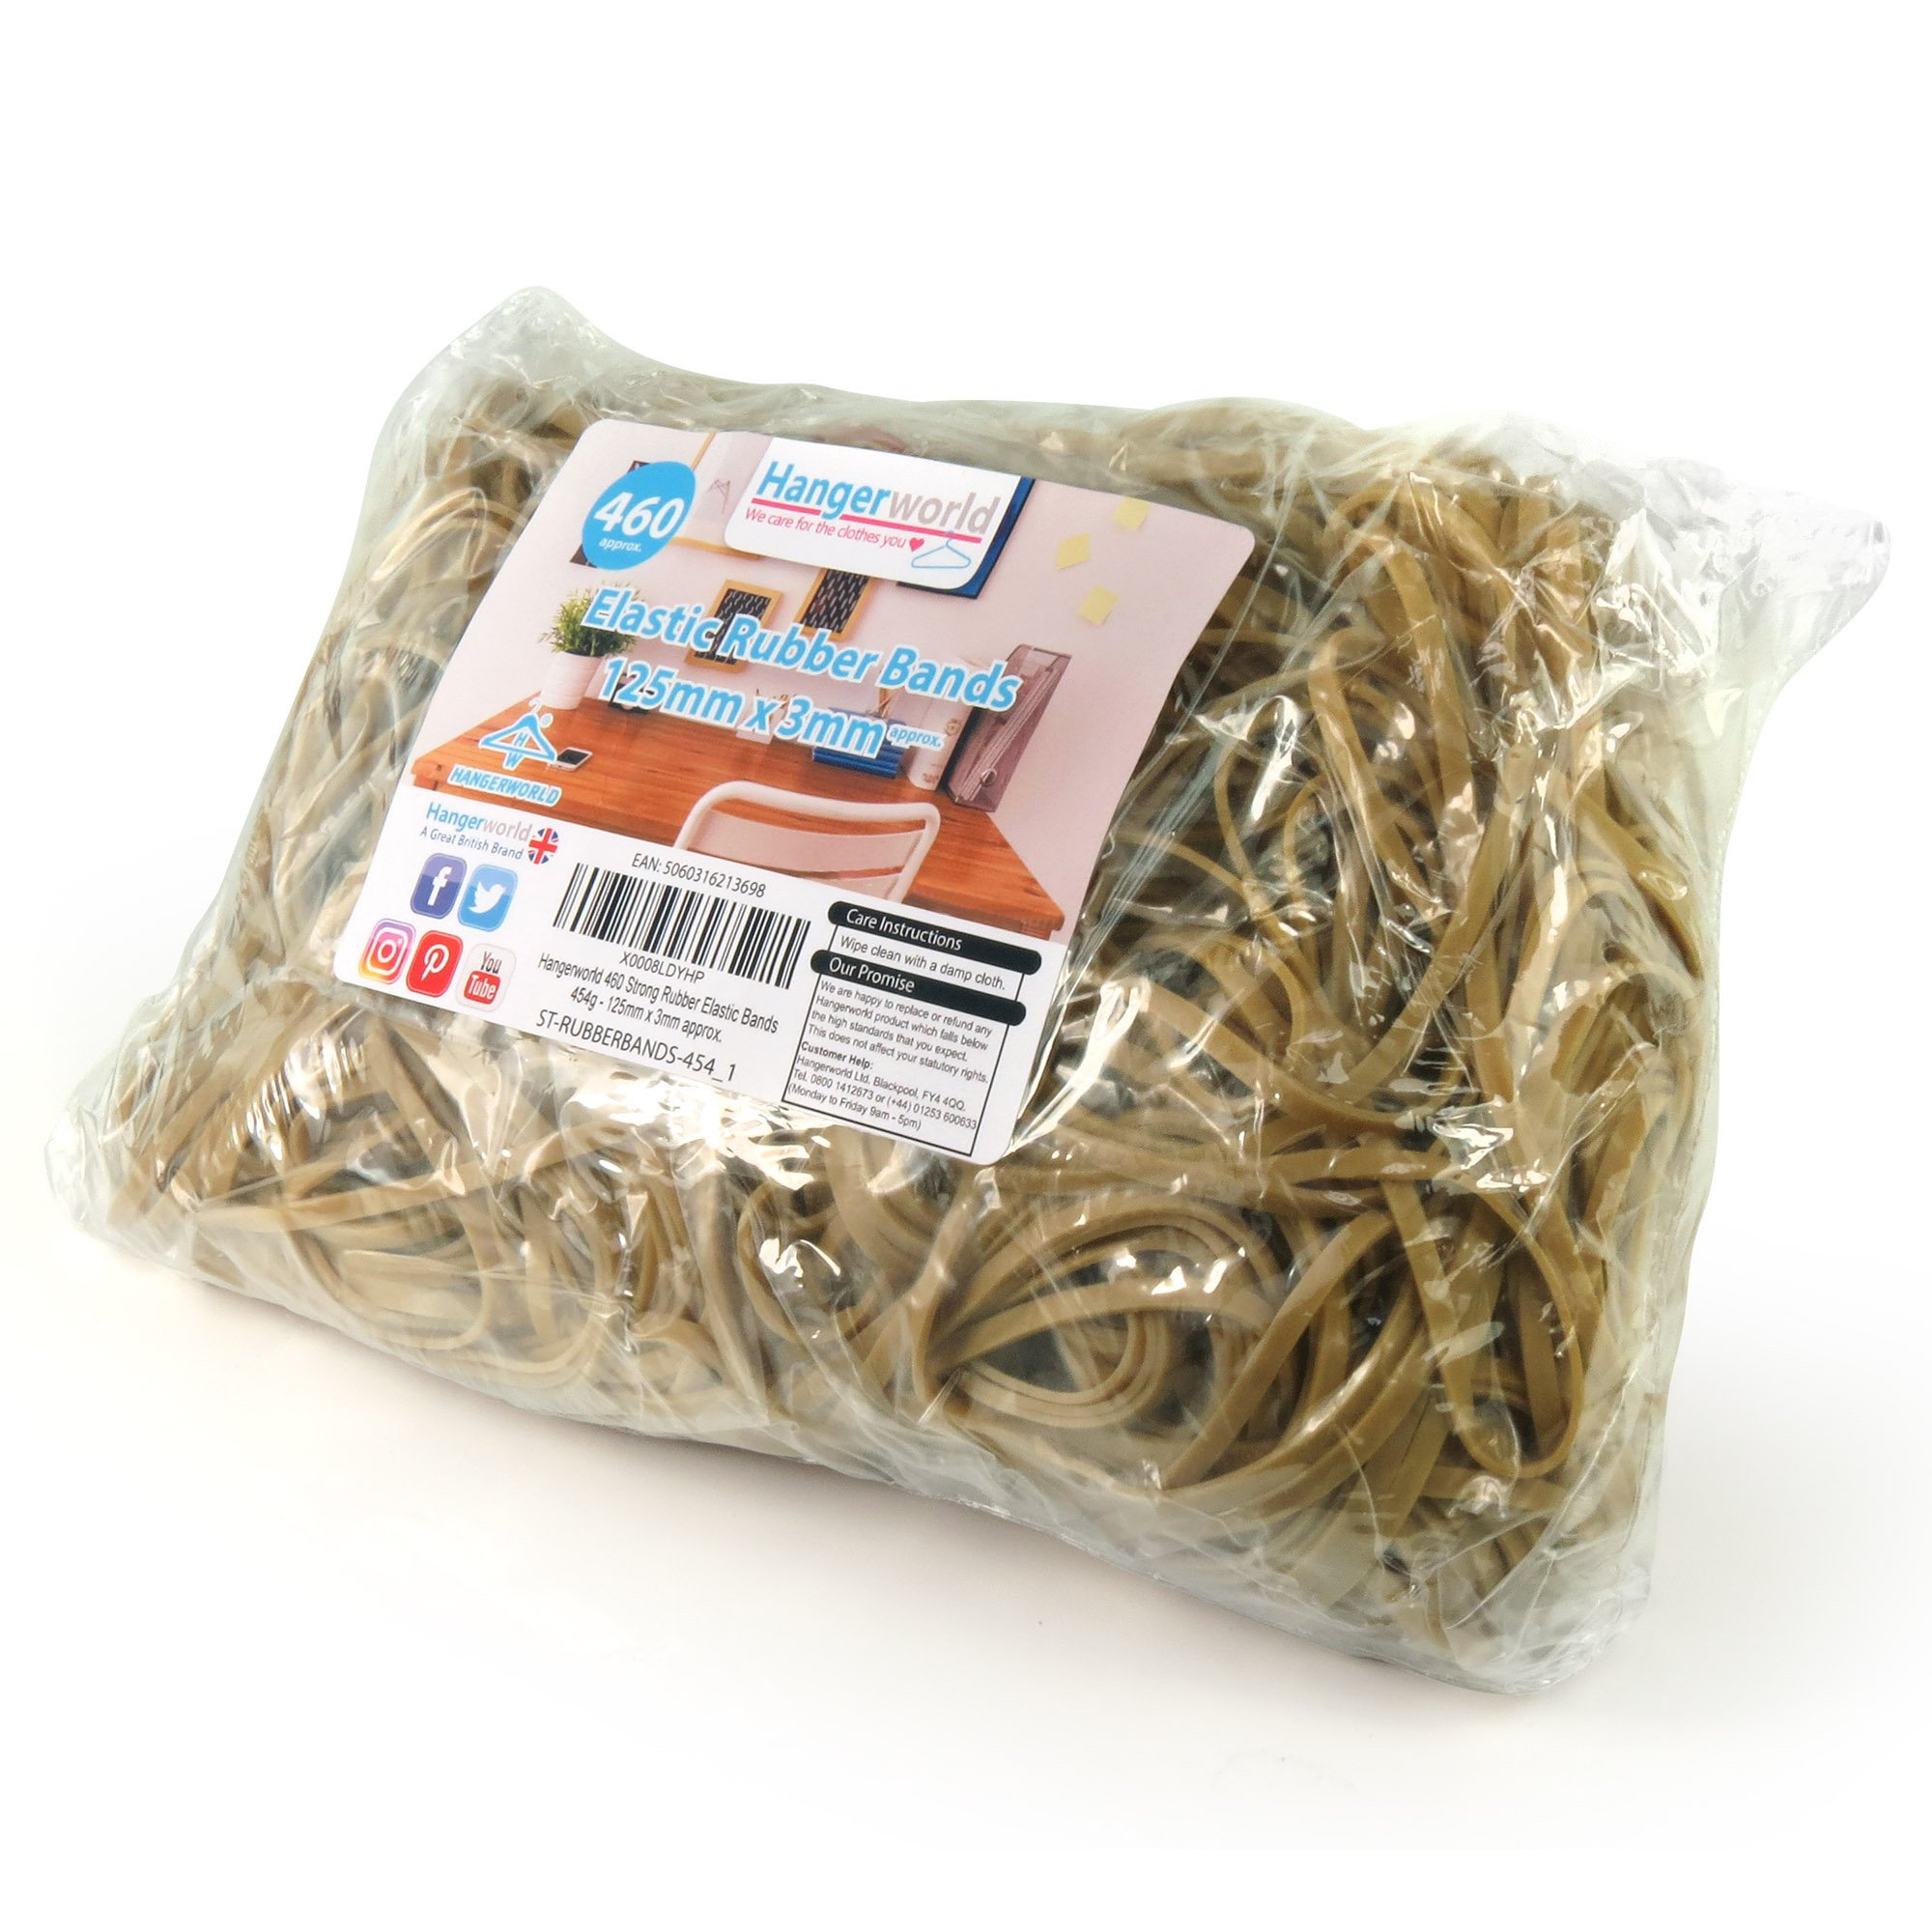 Hangerworld 460 Strong Rubber Elastic Bands No 36 - 454g For Use in School, Office, Home etc.